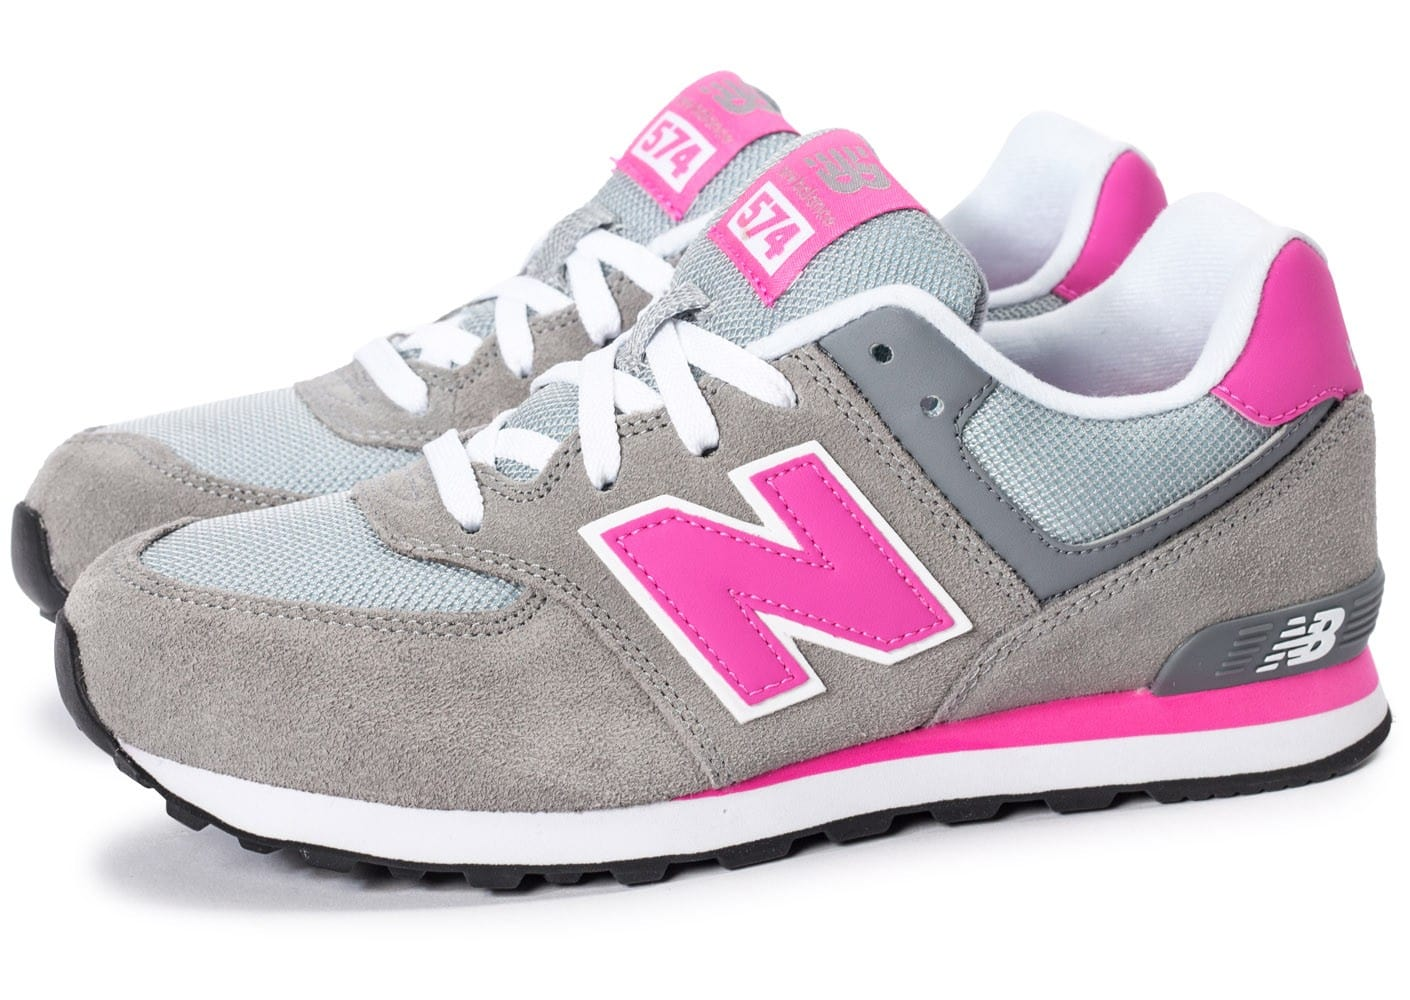 new balance kl574 cdg grise et rose chaussures chaussures chausport. Black Bedroom Furniture Sets. Home Design Ideas